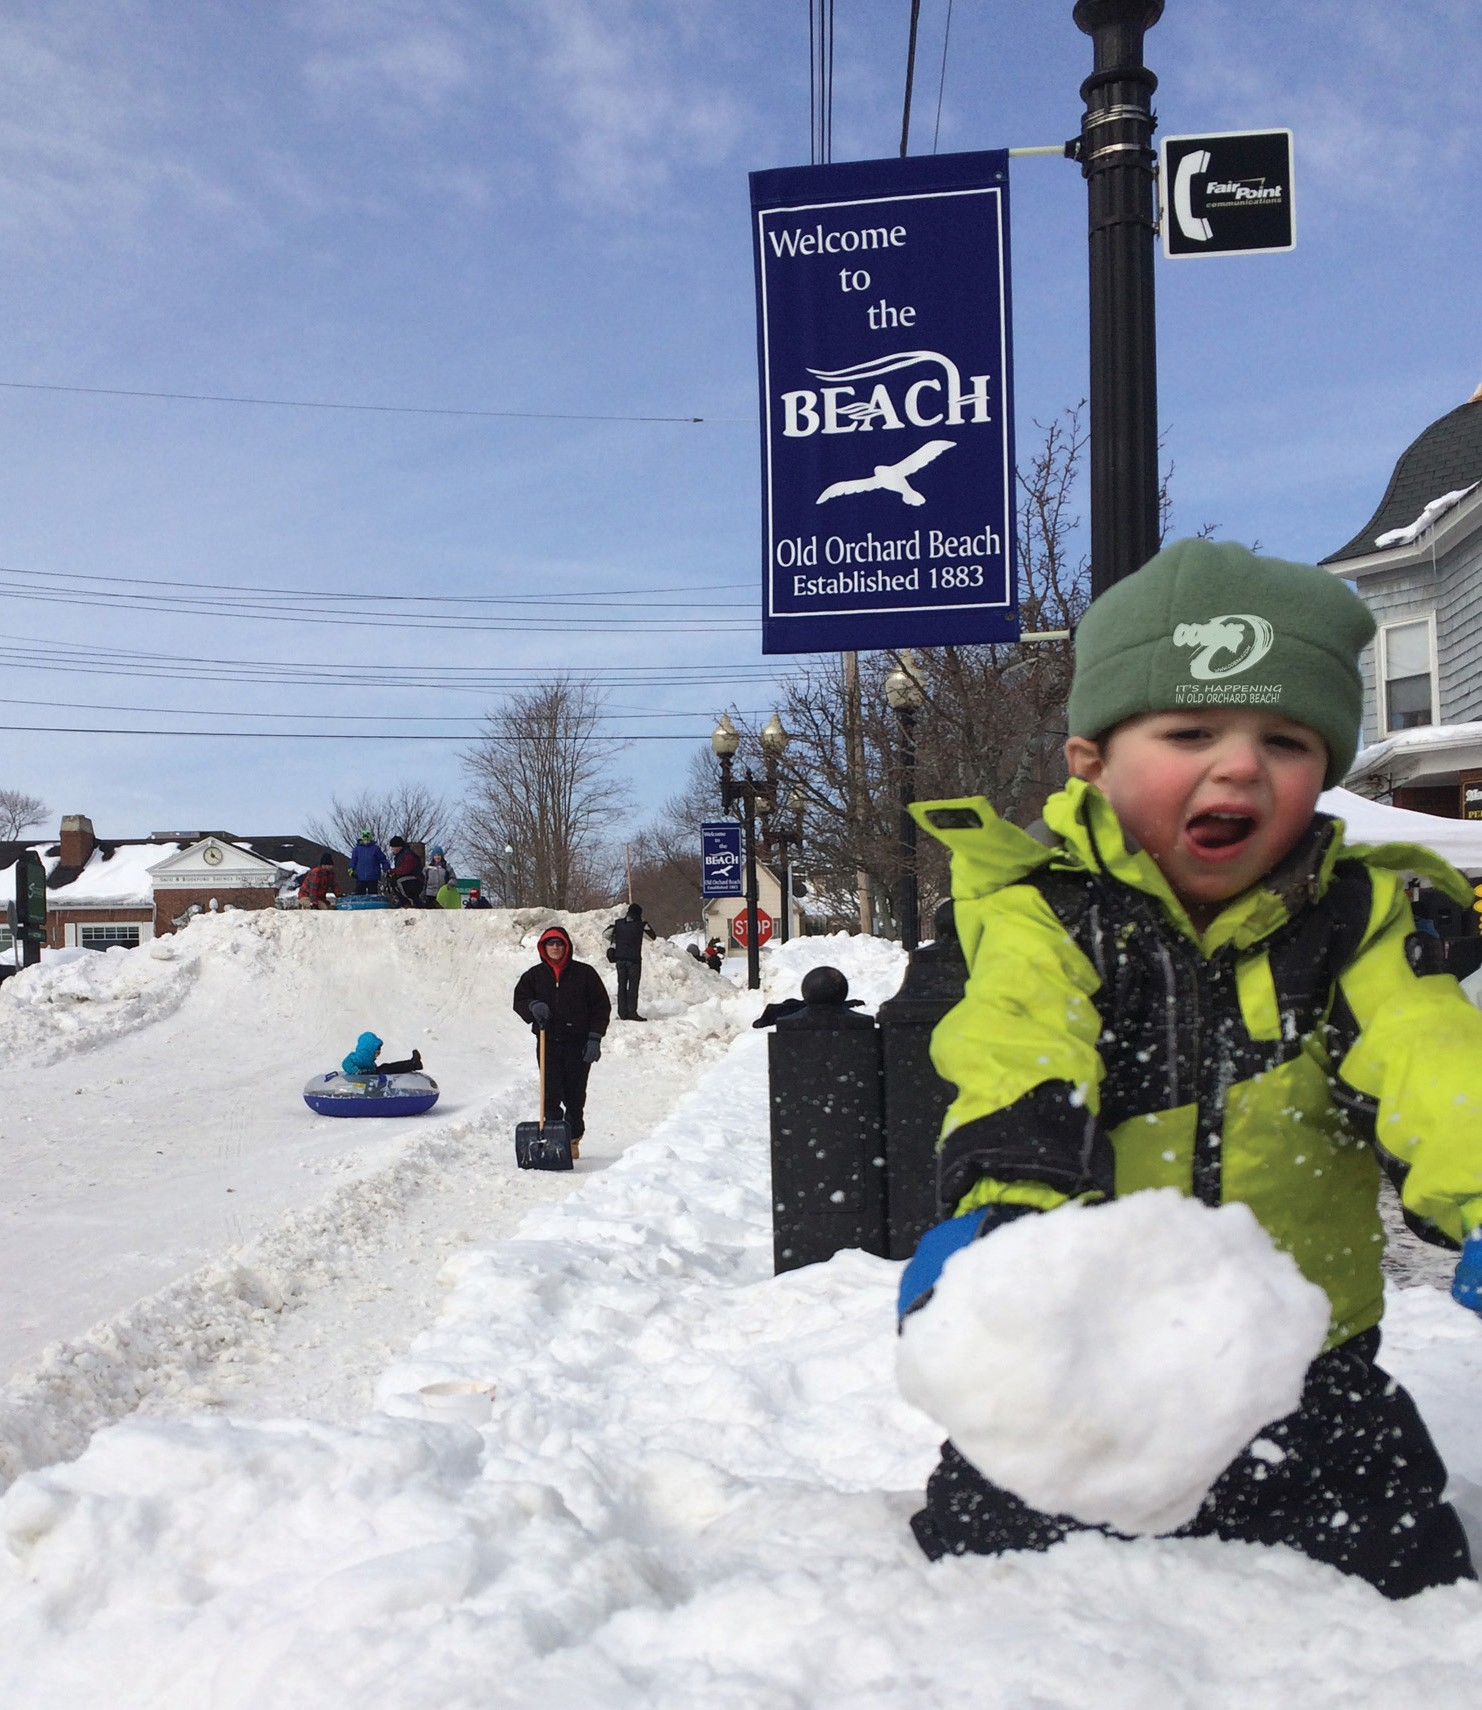 A child plays in the snow while others sled down Old Orchard Street at the 2015 Old Orchard Beach Winter Carnival, an event organized by OOB365.